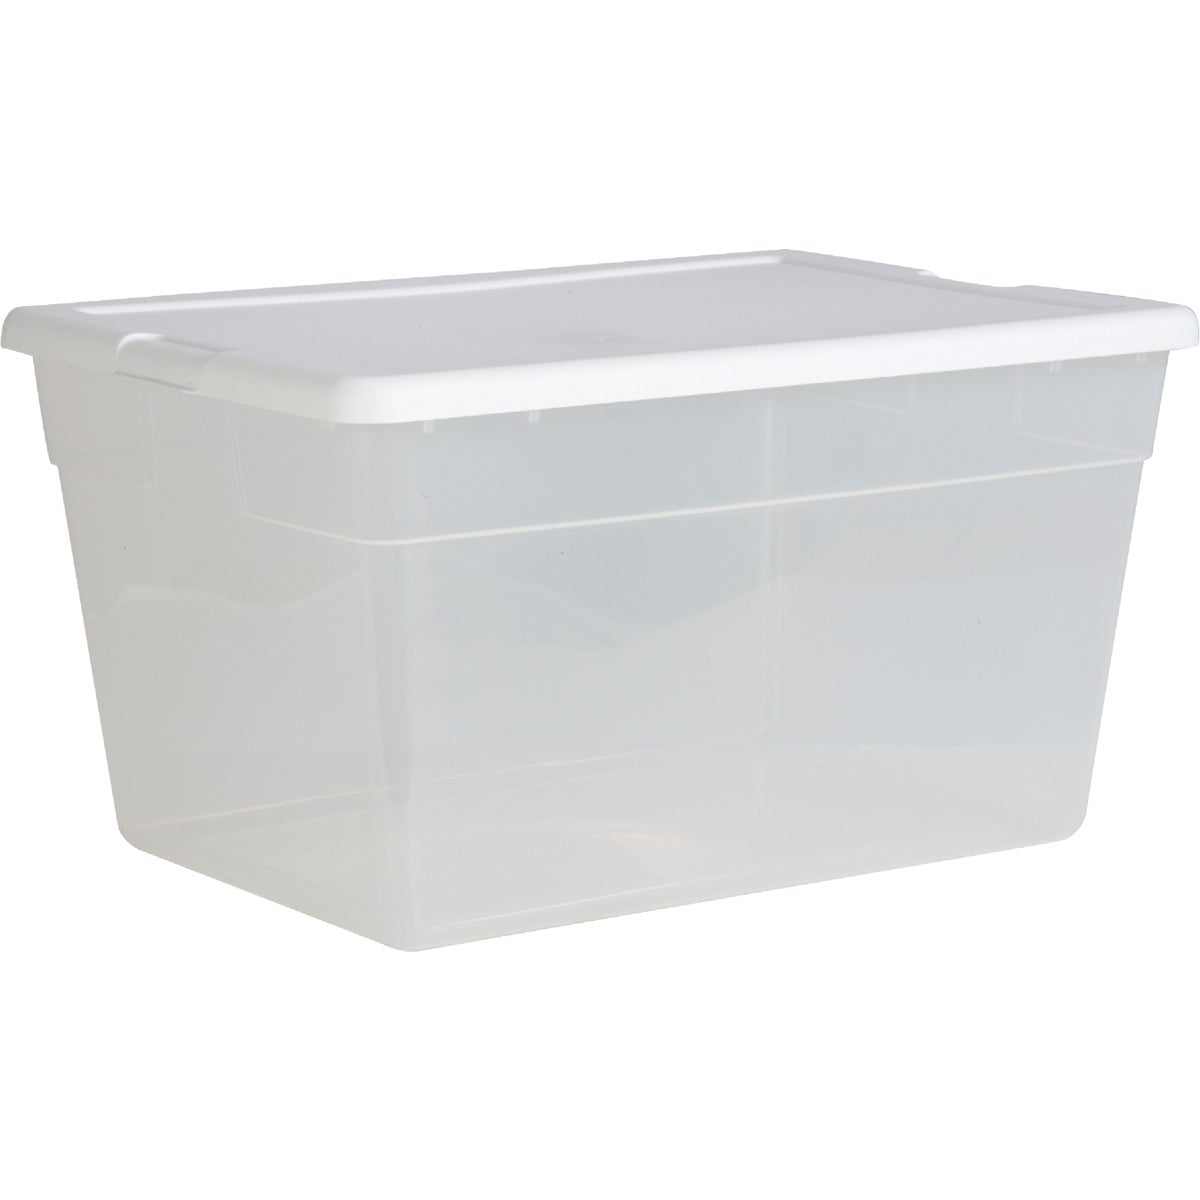 56QT CLEAR STORAGE BOX - 16598008 by Sterilite Corp